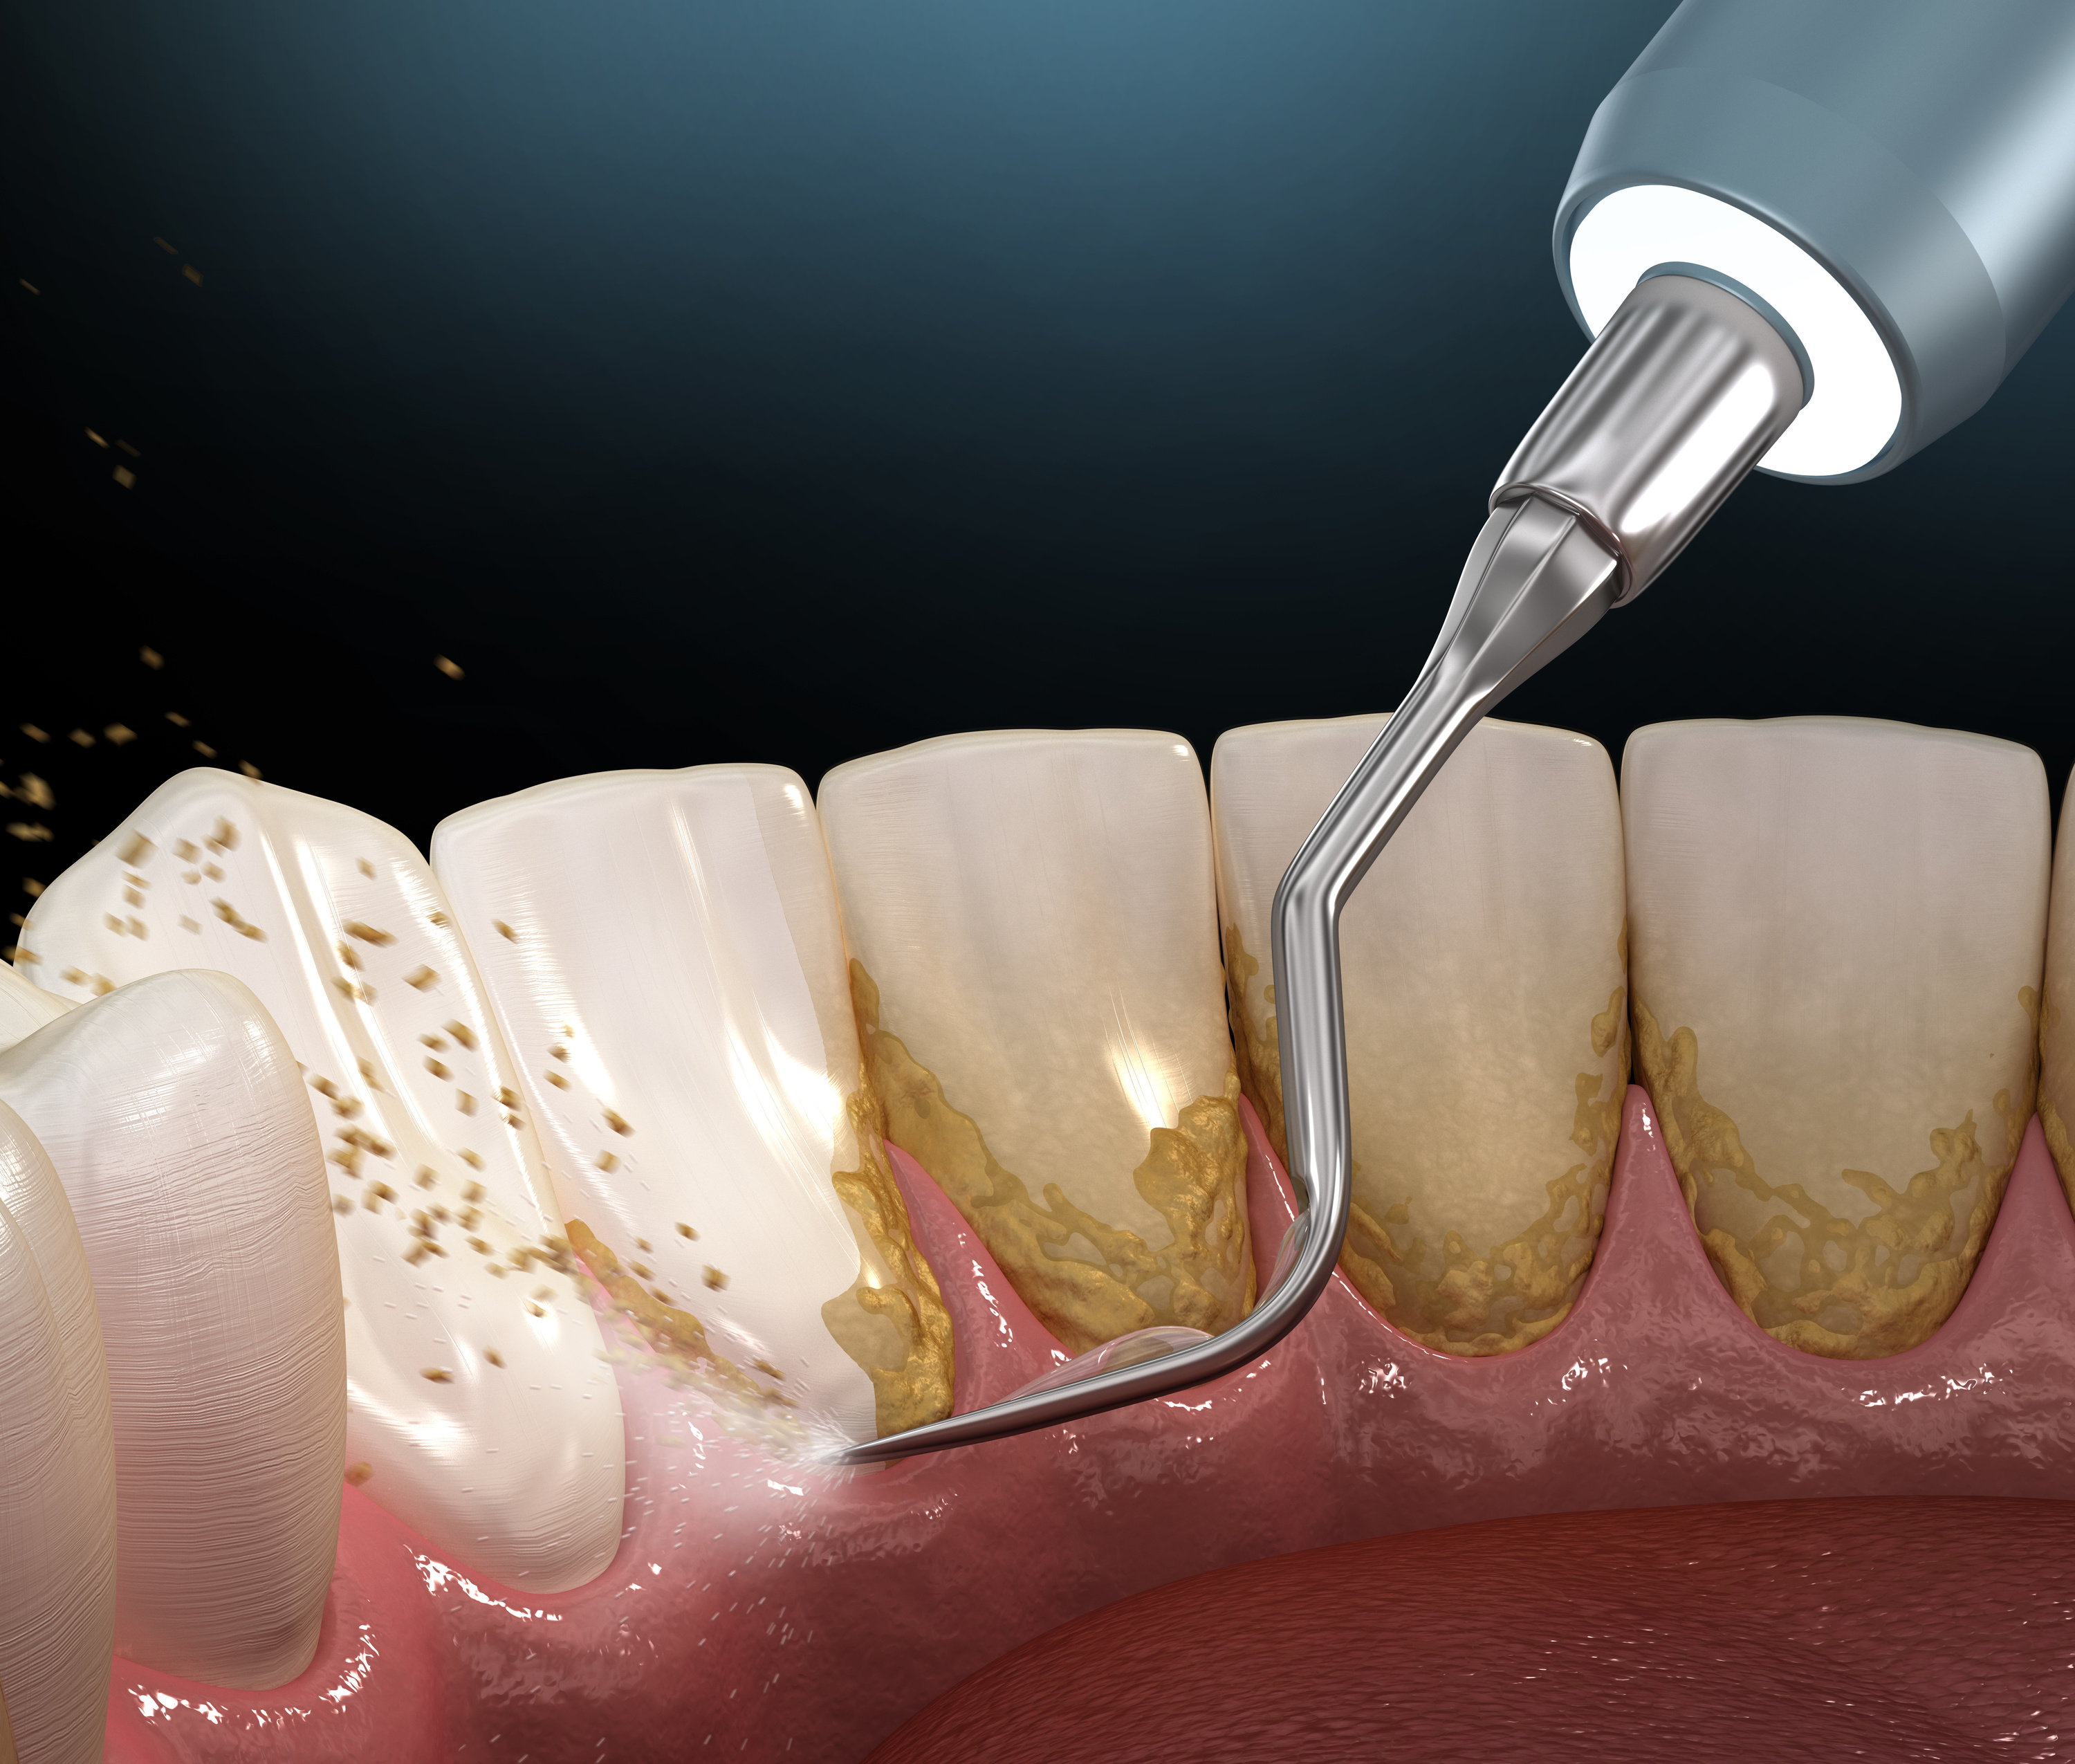 Plaque And Tartar: What Is The Difference?